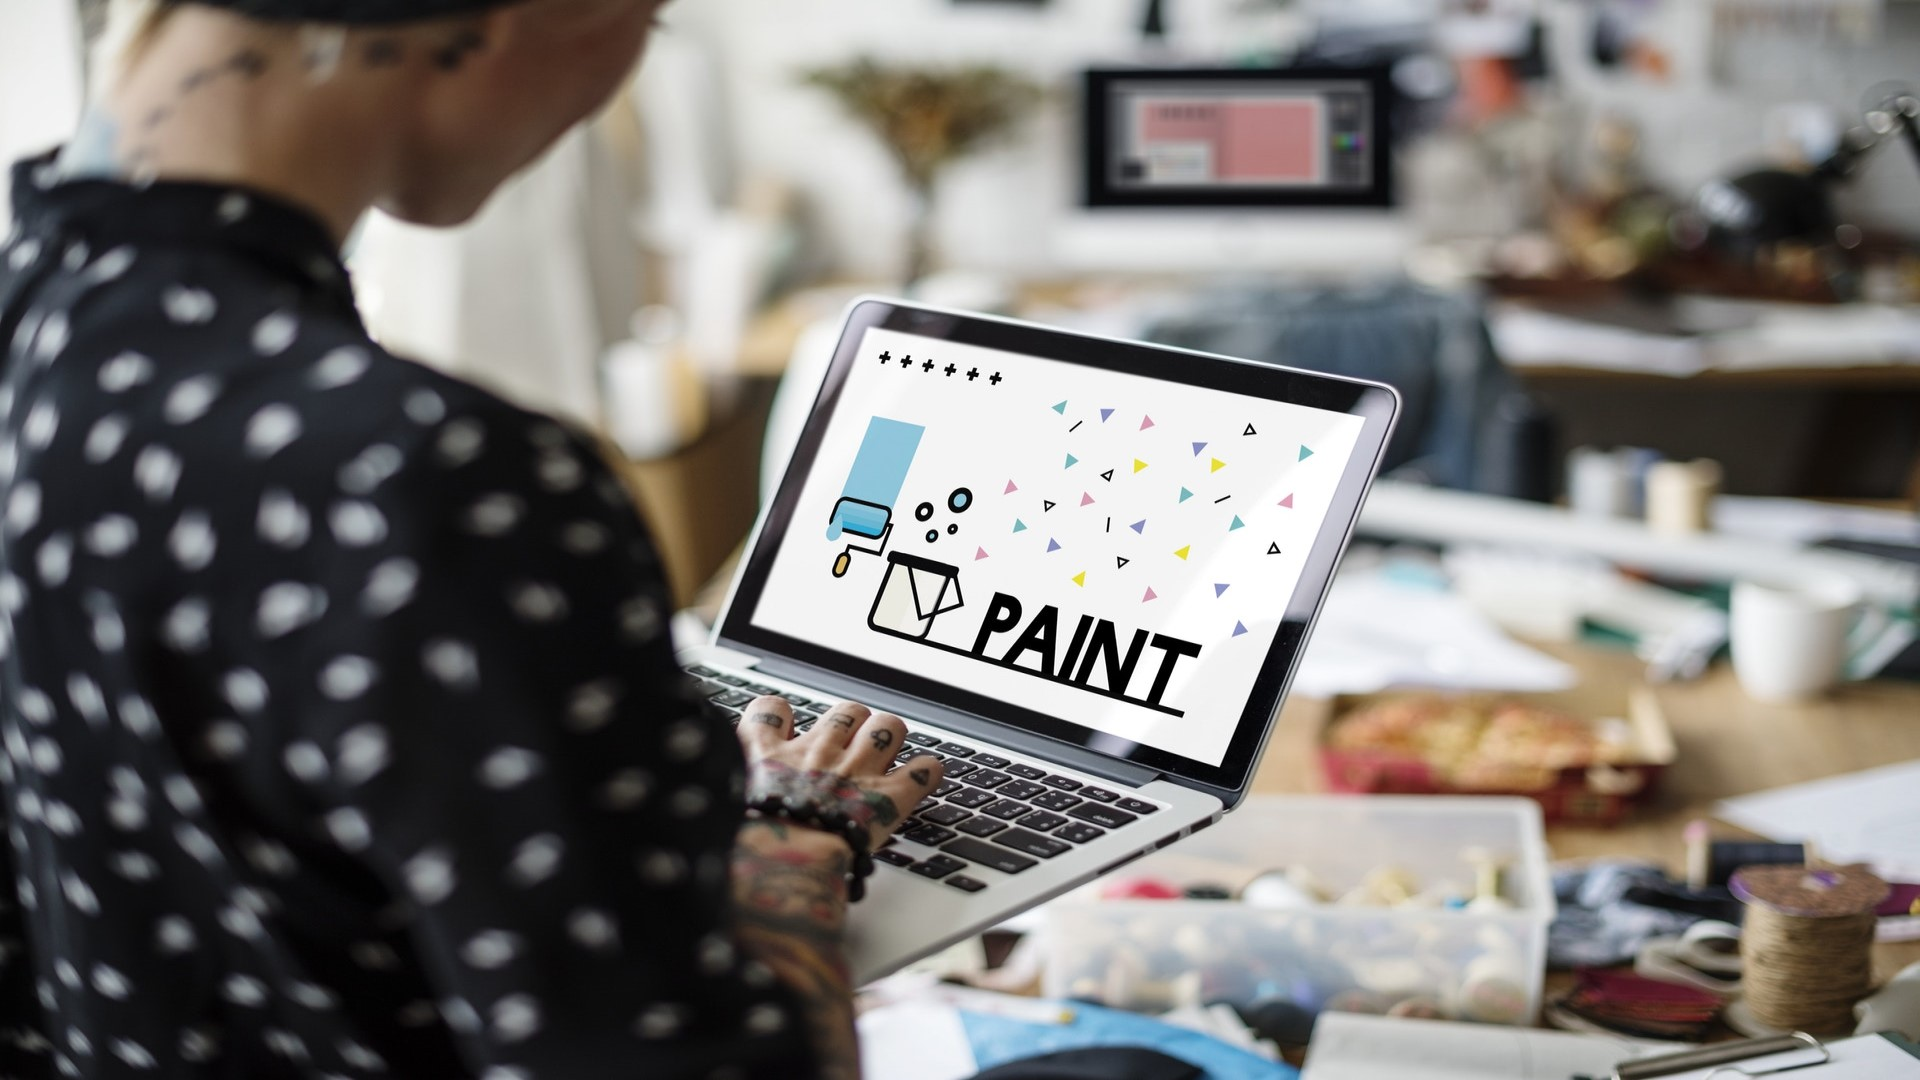 The paint is a part of your Brand Identity.